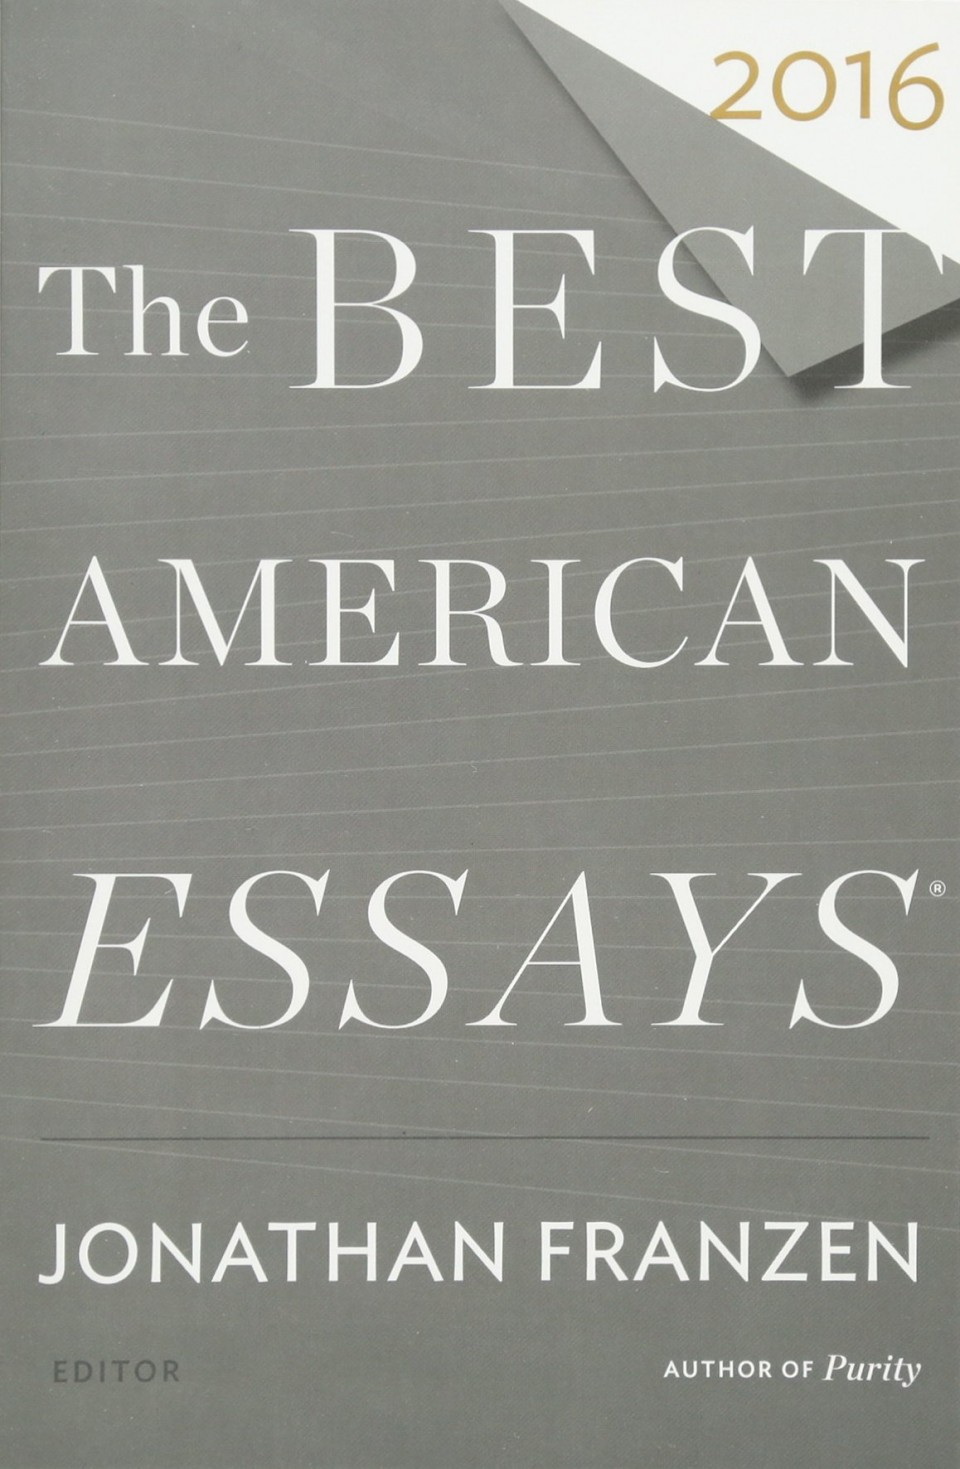 005 The Best American Essays Essay Example Wonderful 2013 Pdf Download Of Century Sparknotes 2017 960